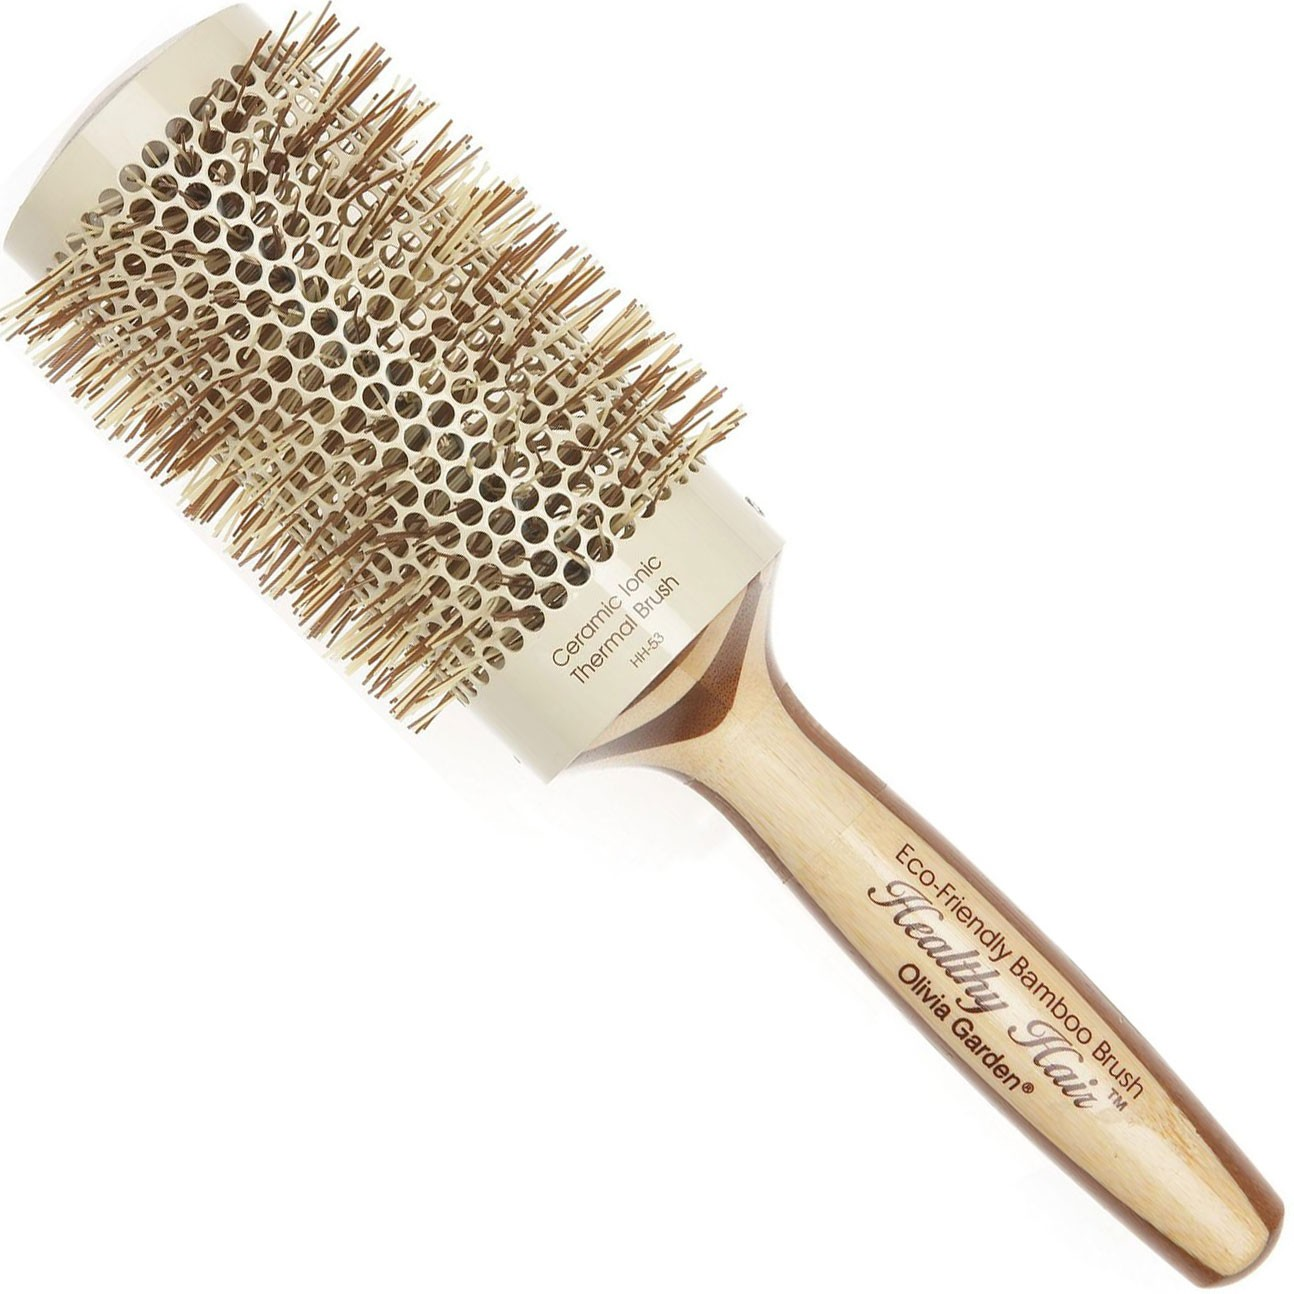 Olivia Garden Eco Friendly Bamboo Brush HH-53